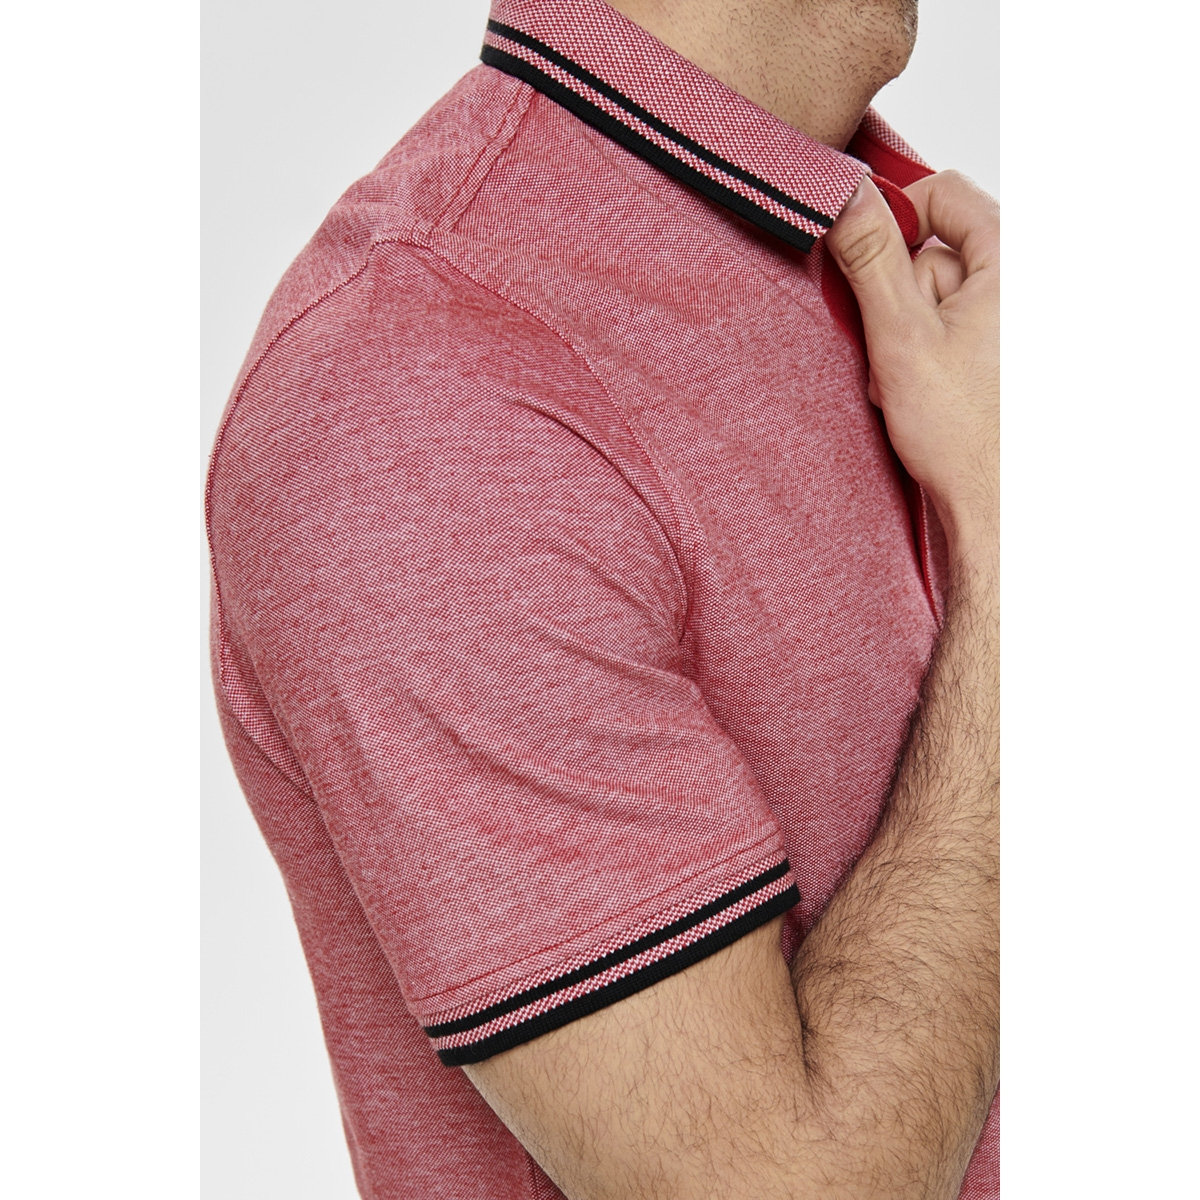 onsstan ss fitted polo tee 6560 n 22011349 only & sons polo tango red